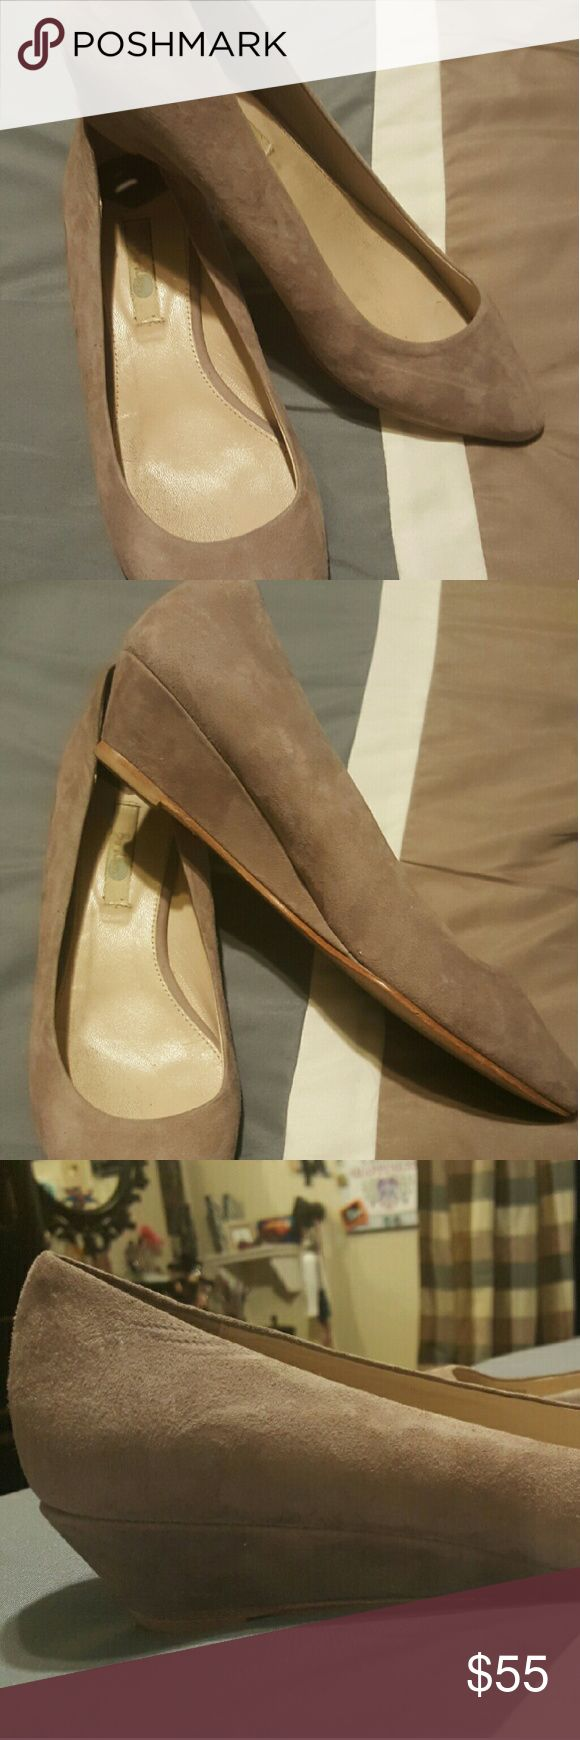 BODEN shoes Beige genuine suede leather upper kitten wedges. Suede shows no signs of wear. Still have plenty of life. Boden Shoes Wedges